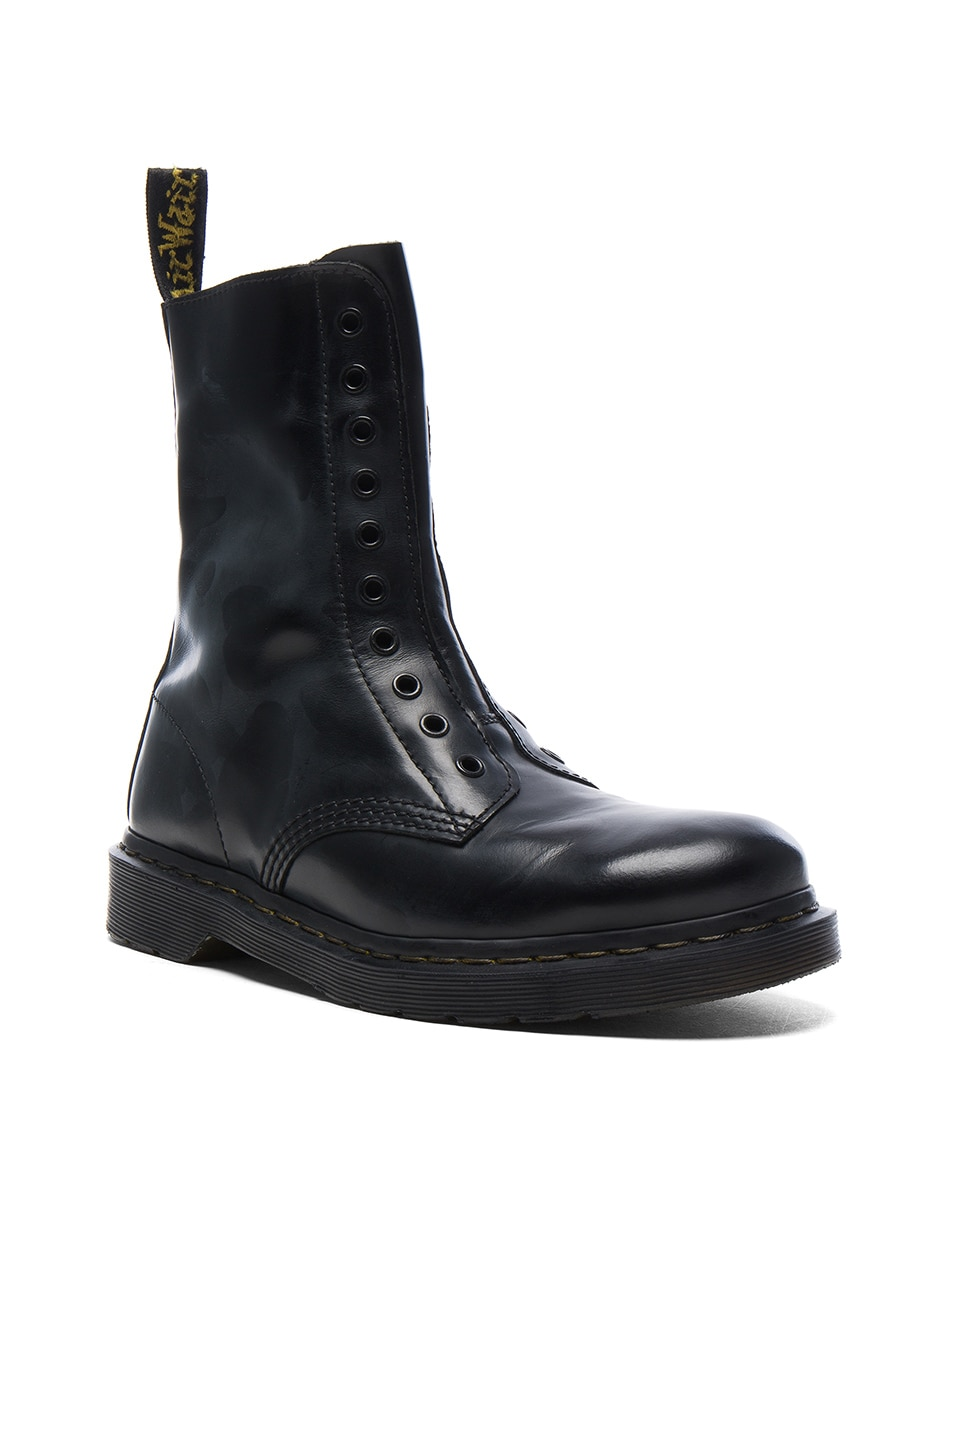 Image 1 of VETEMENTS x Dr. Martens Leather Borderline Boots in Black